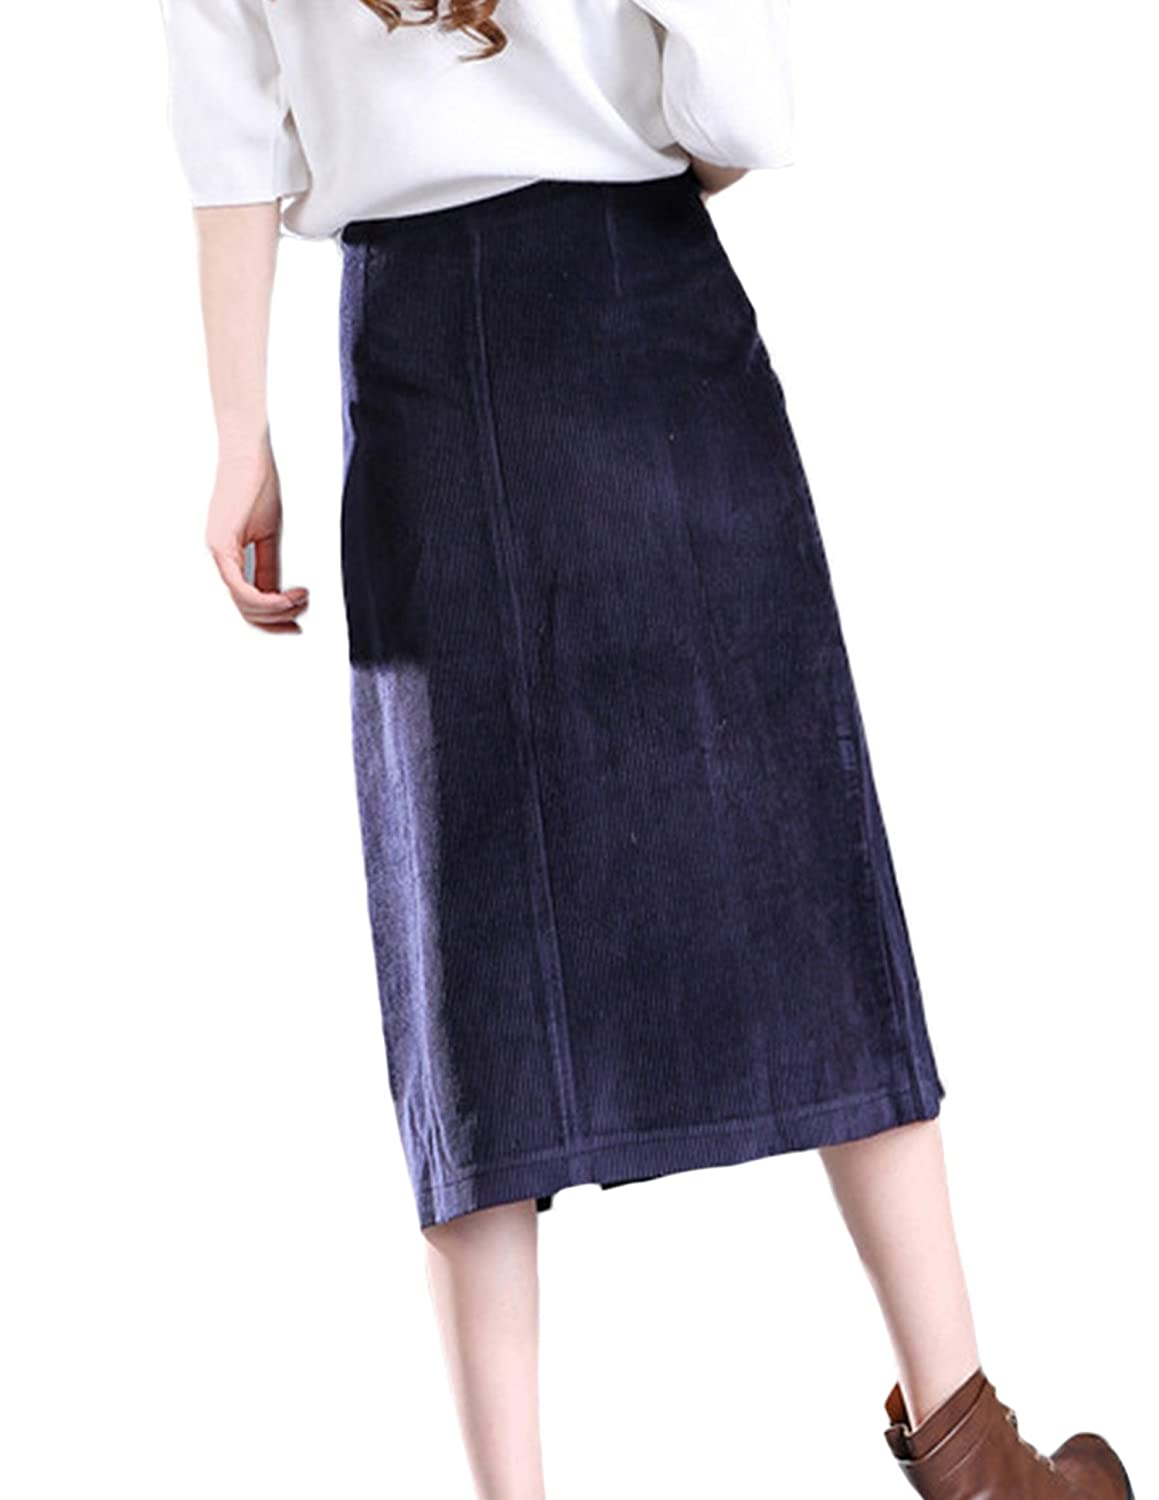 7437df38b5 Johe Women's Cotton Corduroy Double Slits Front Zipper Midi Skirts:  Amazon.ca: Clothing & Accessories